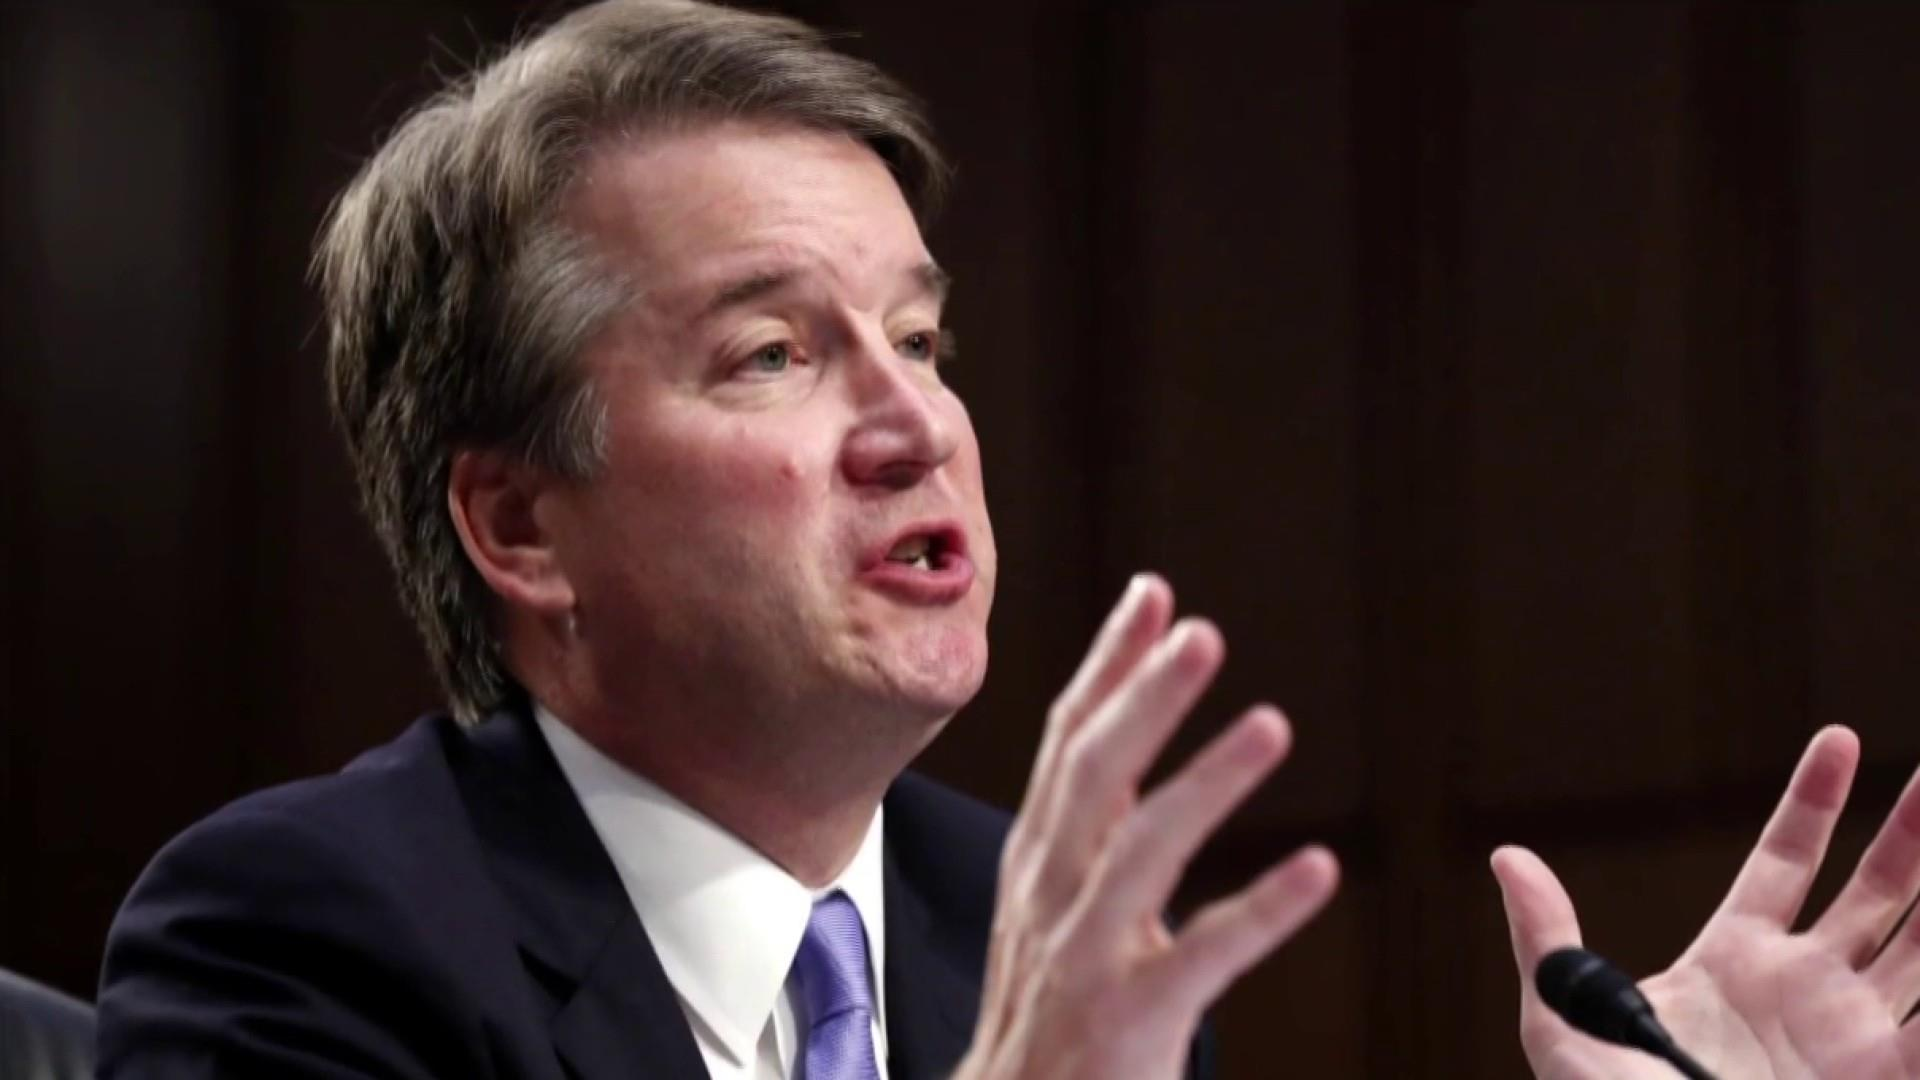 Lawrence: What is standard of proof on Kavanaugh allegations?